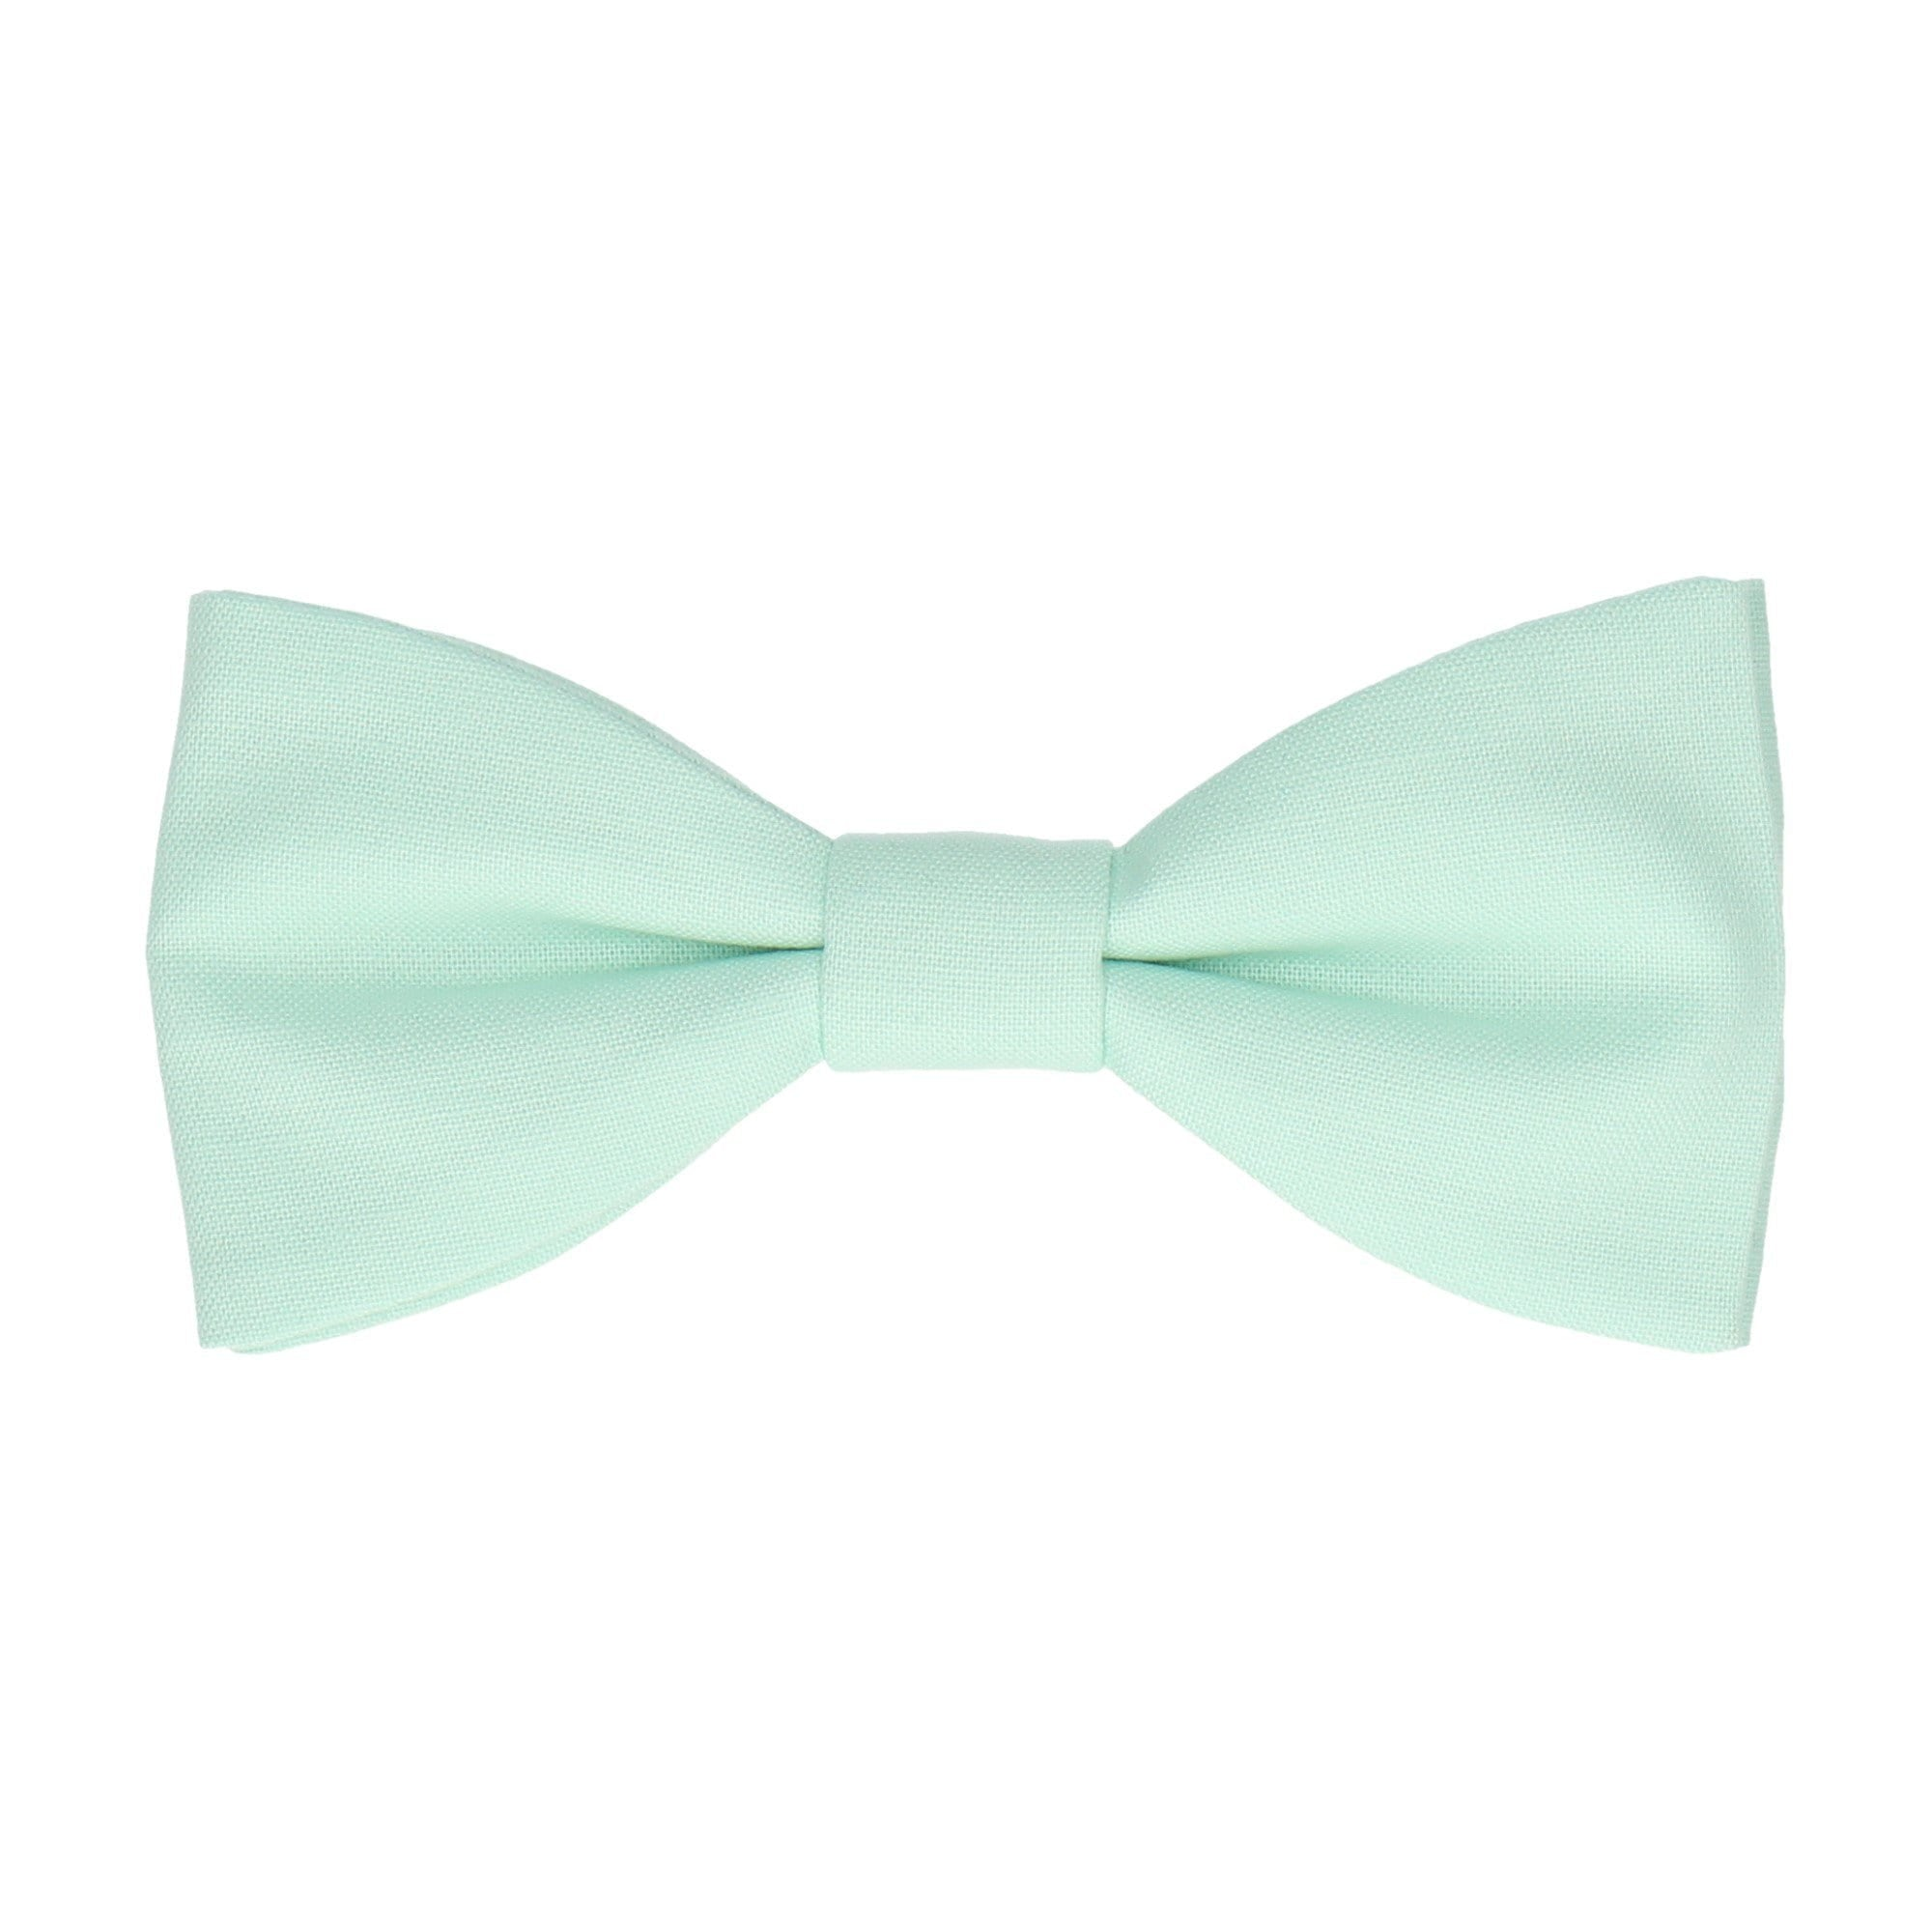 Cotton Seafoam Green Bow Tie